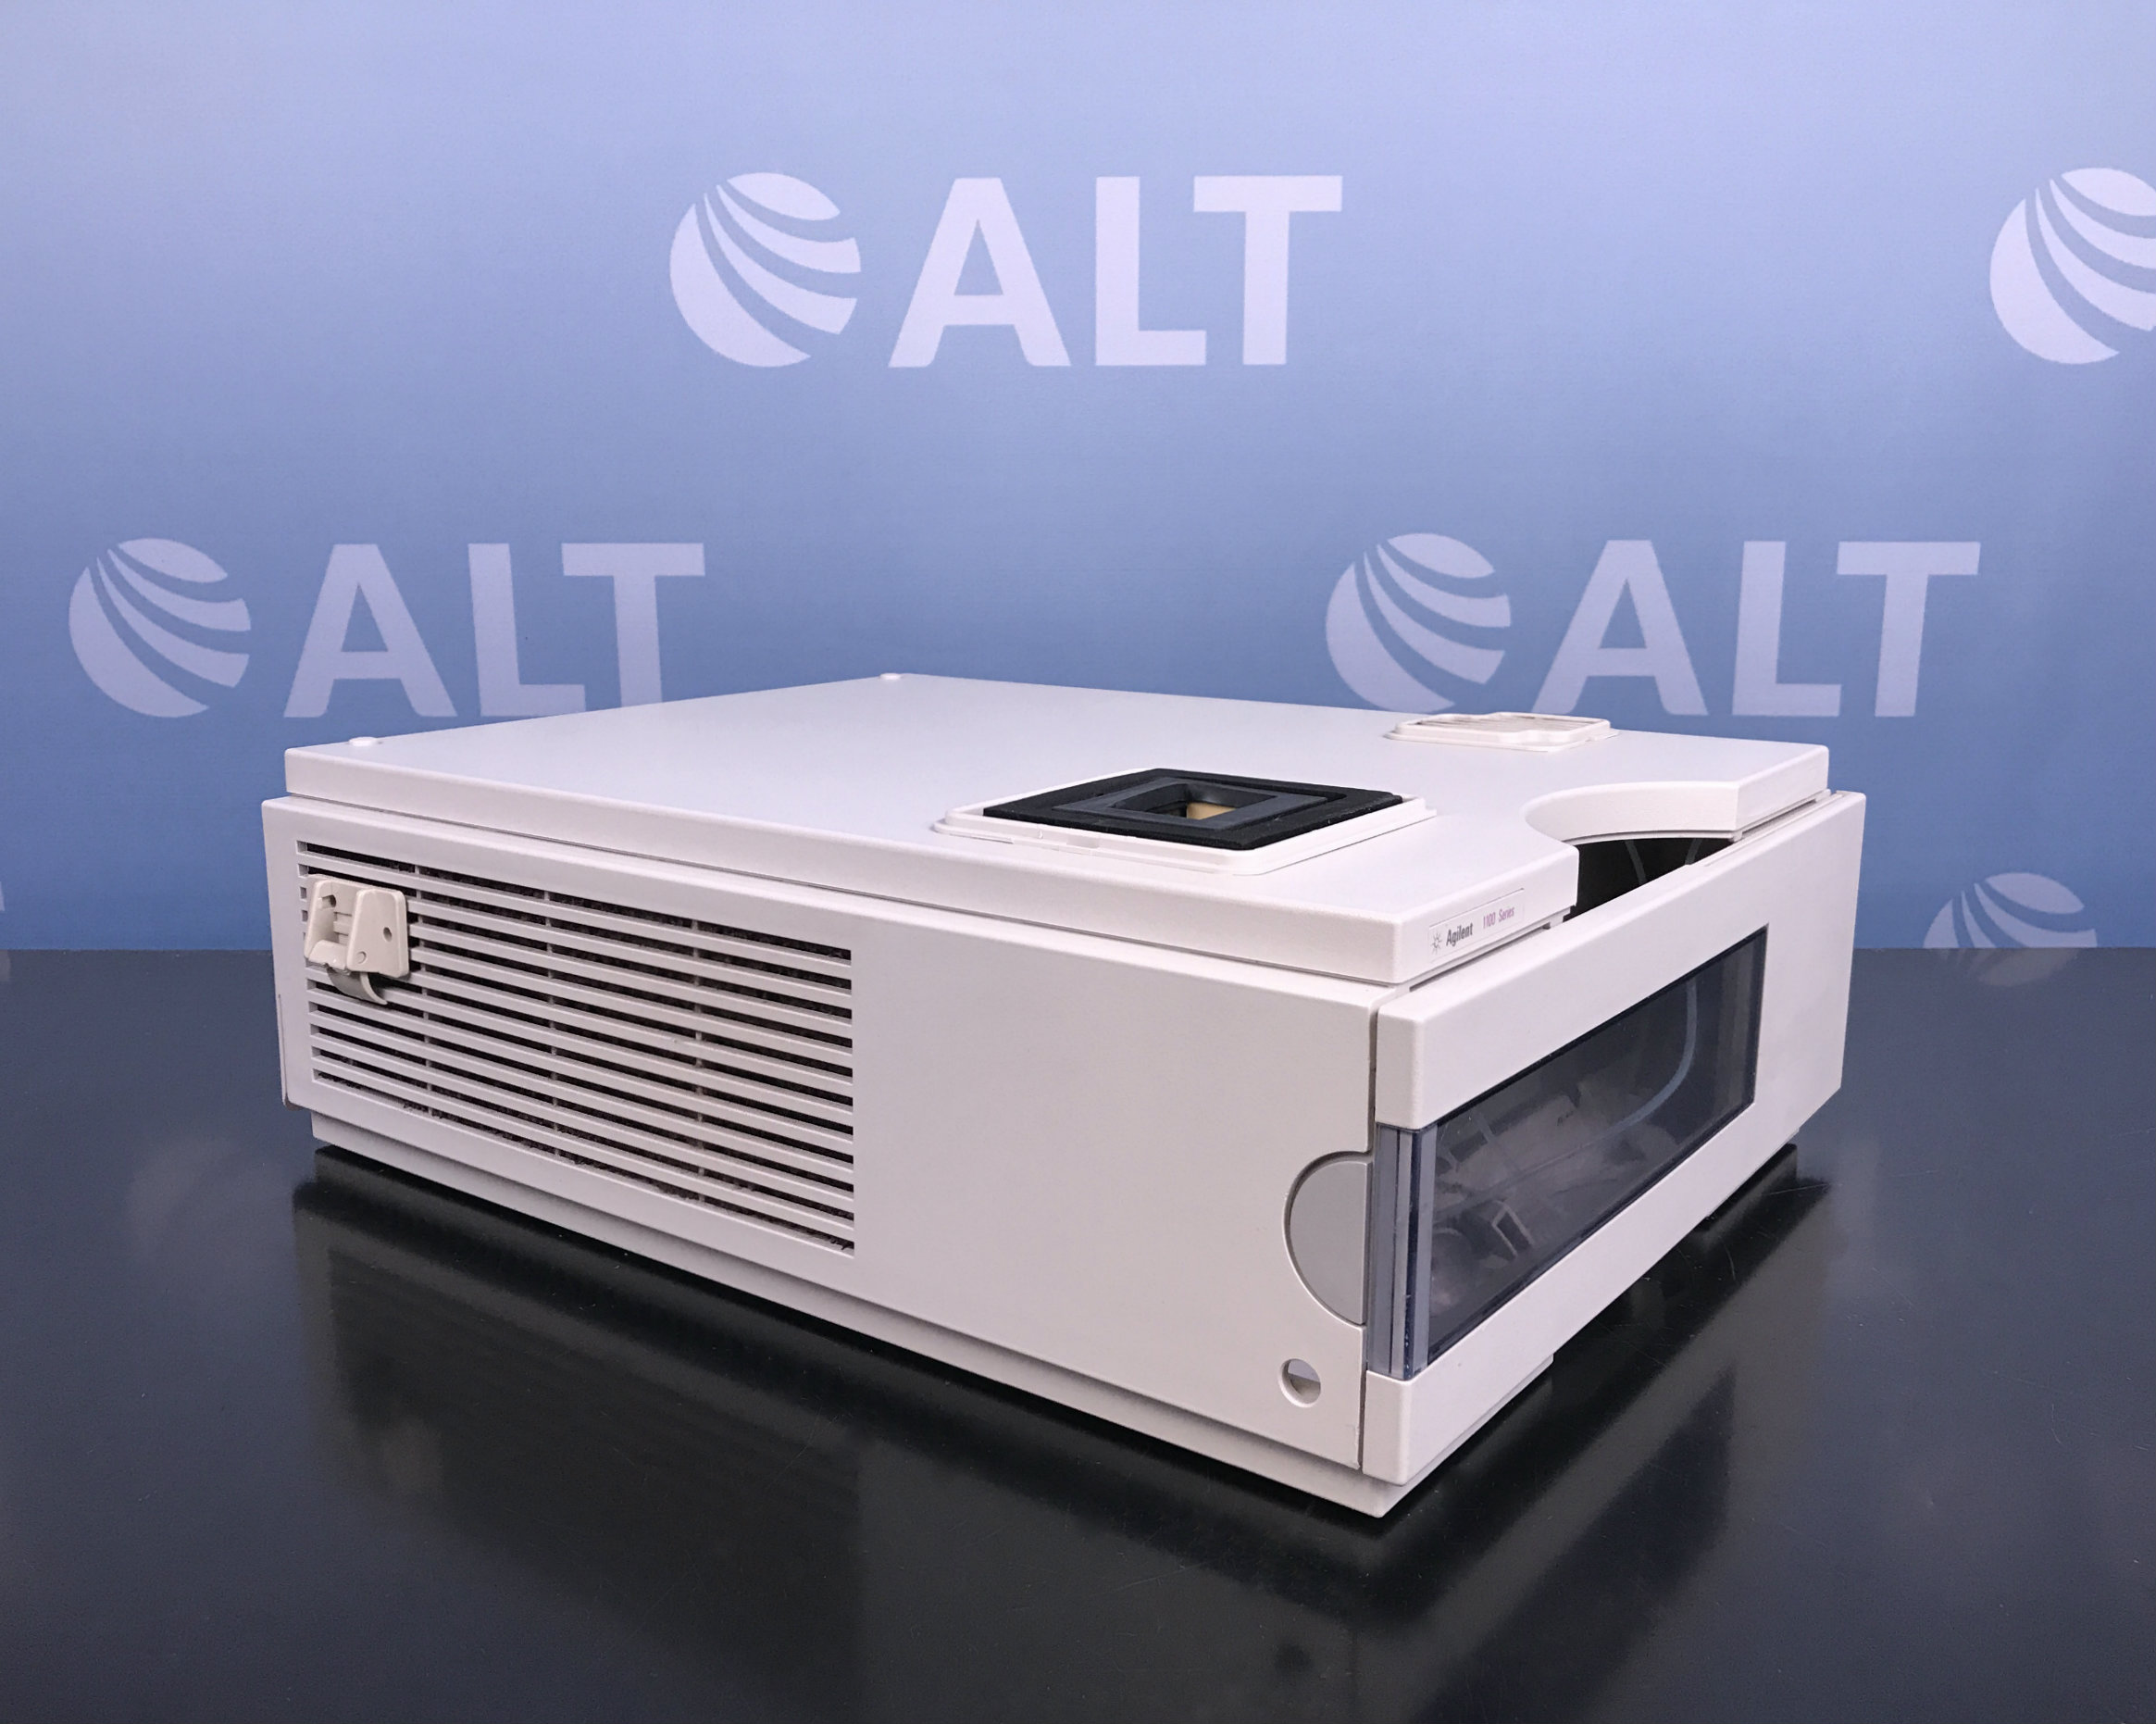 Agilent Technologies 1100 Series ALS Therm G1330B Image